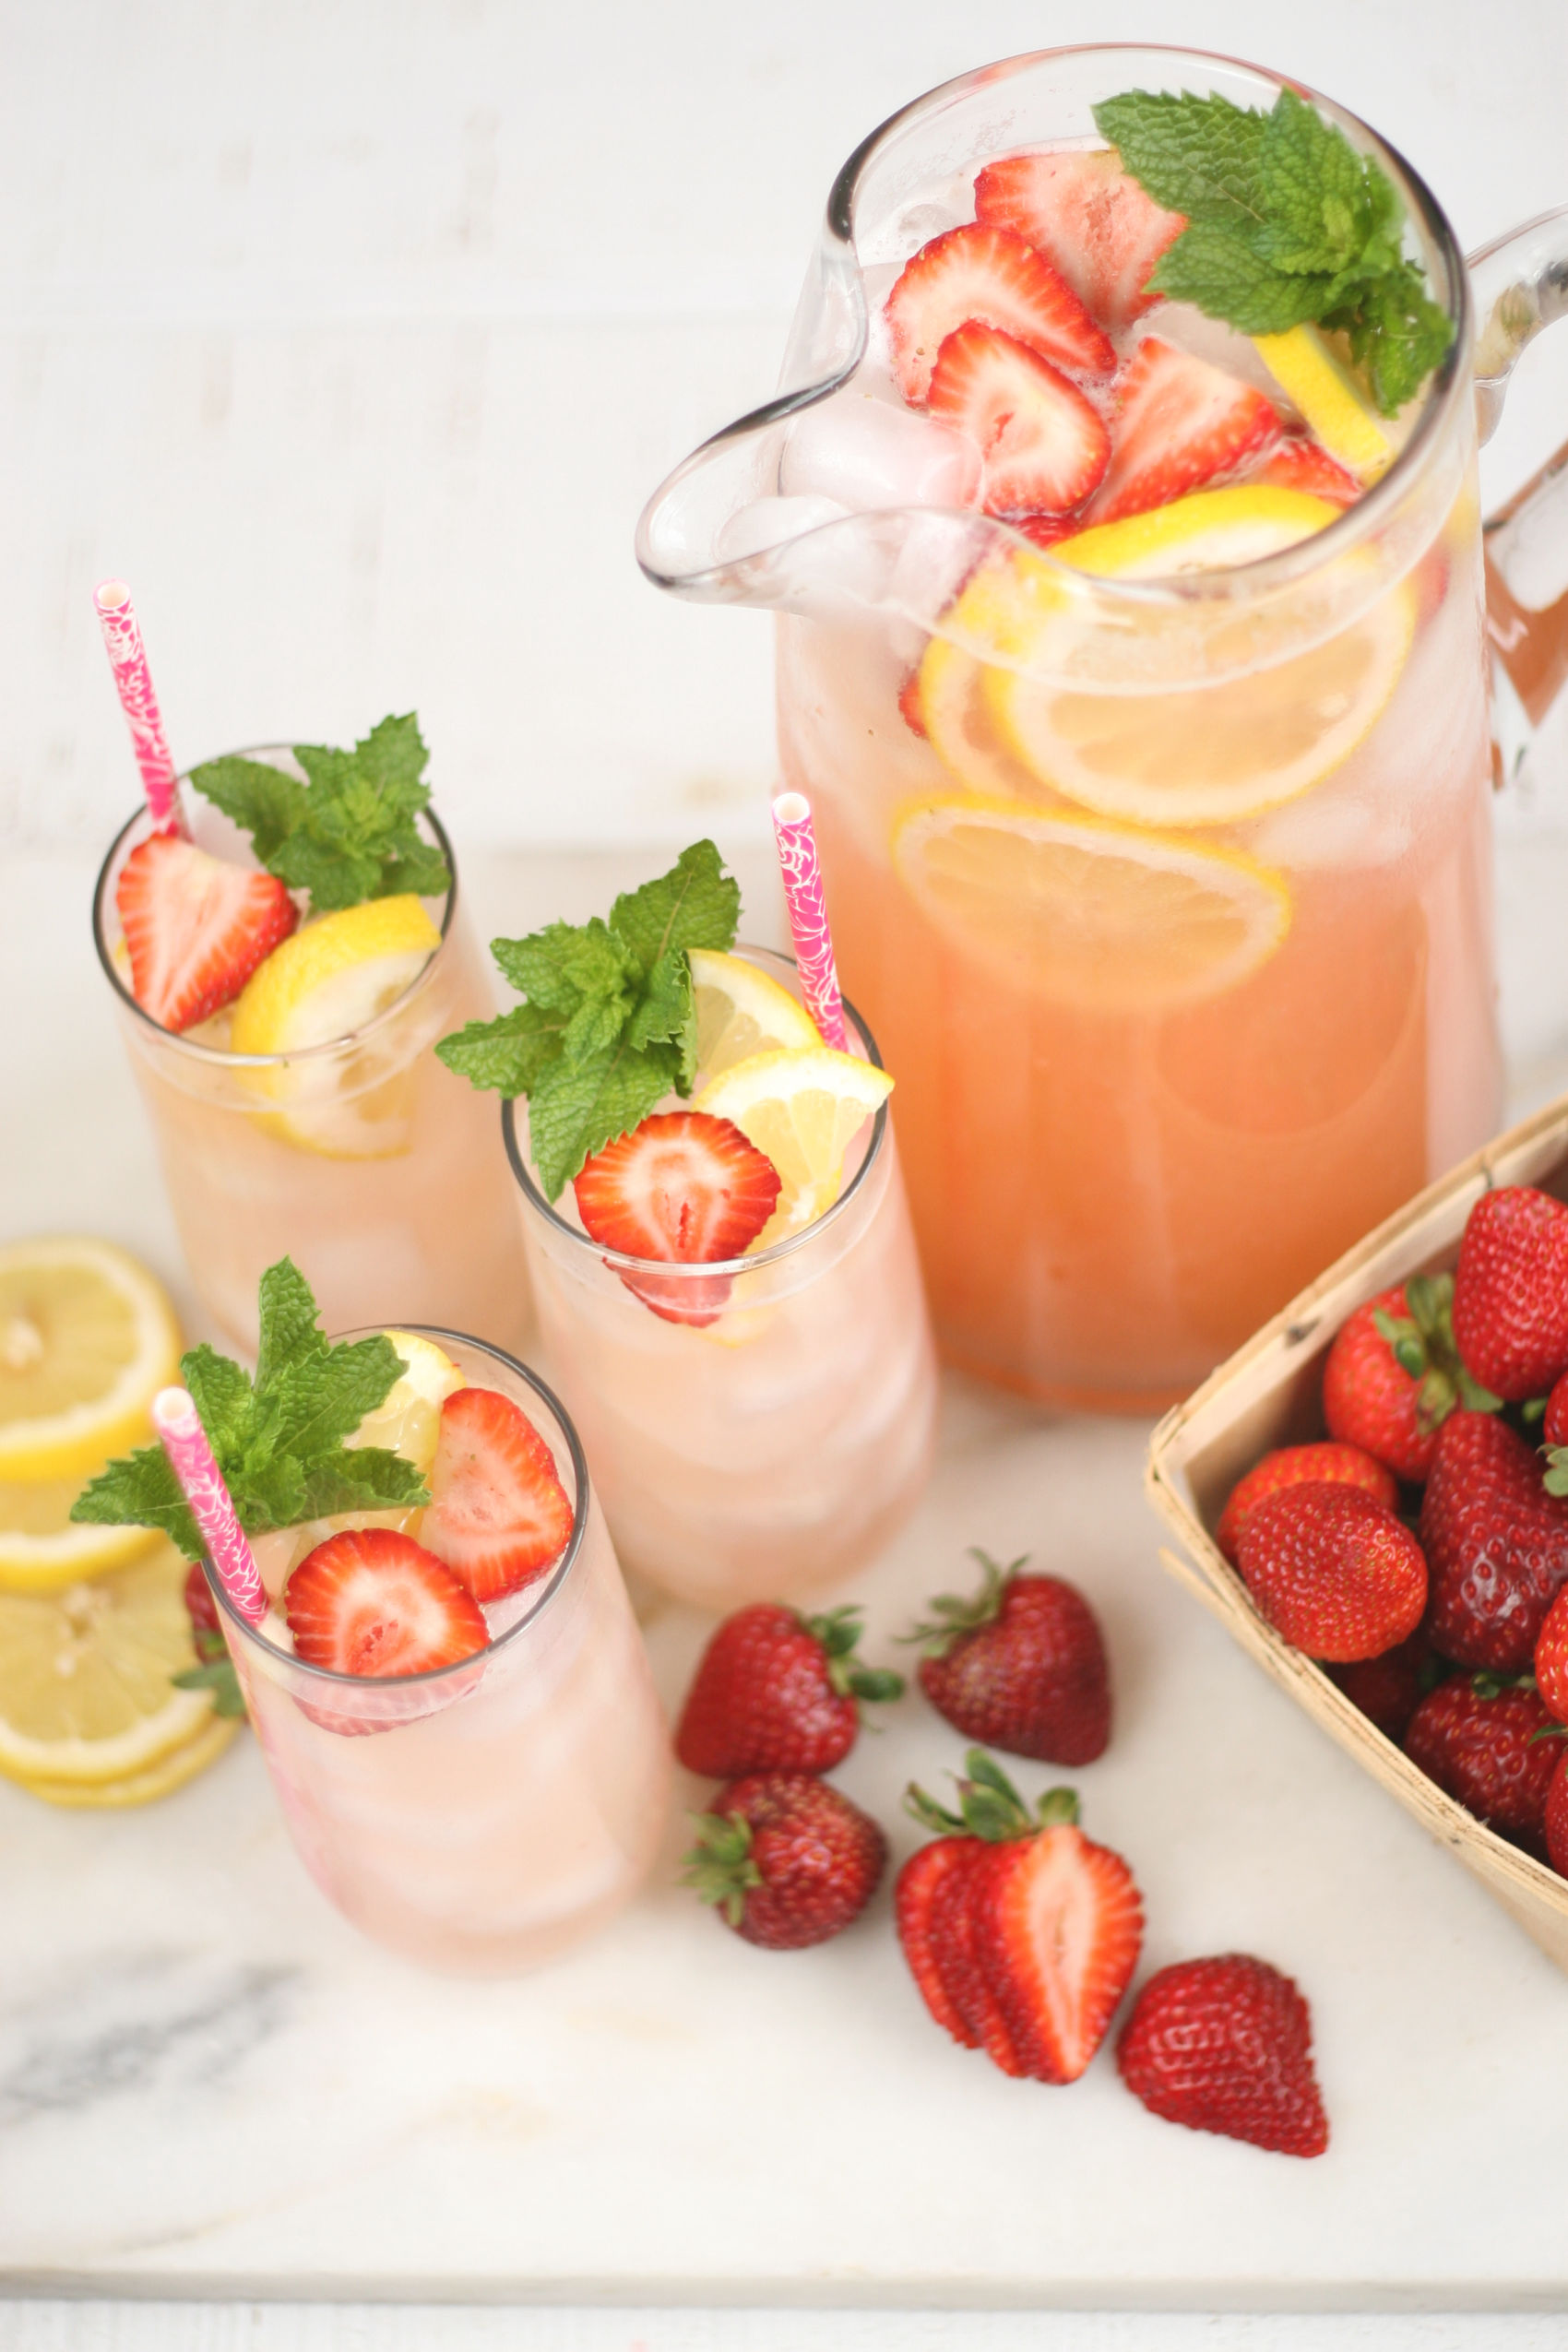 Homemade Lemonade in a glass pouring pitcher with glasses to the side.